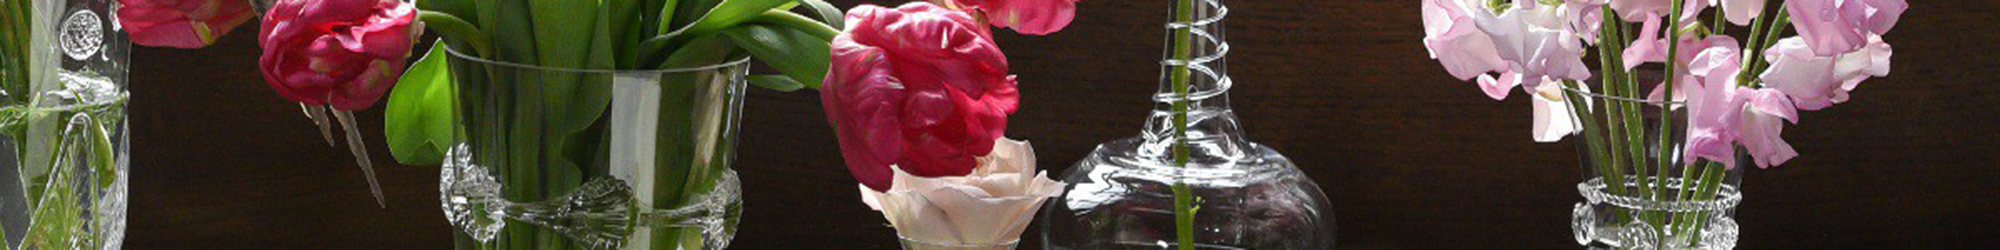 Decorative Vases, Urns, Jars & Bottles